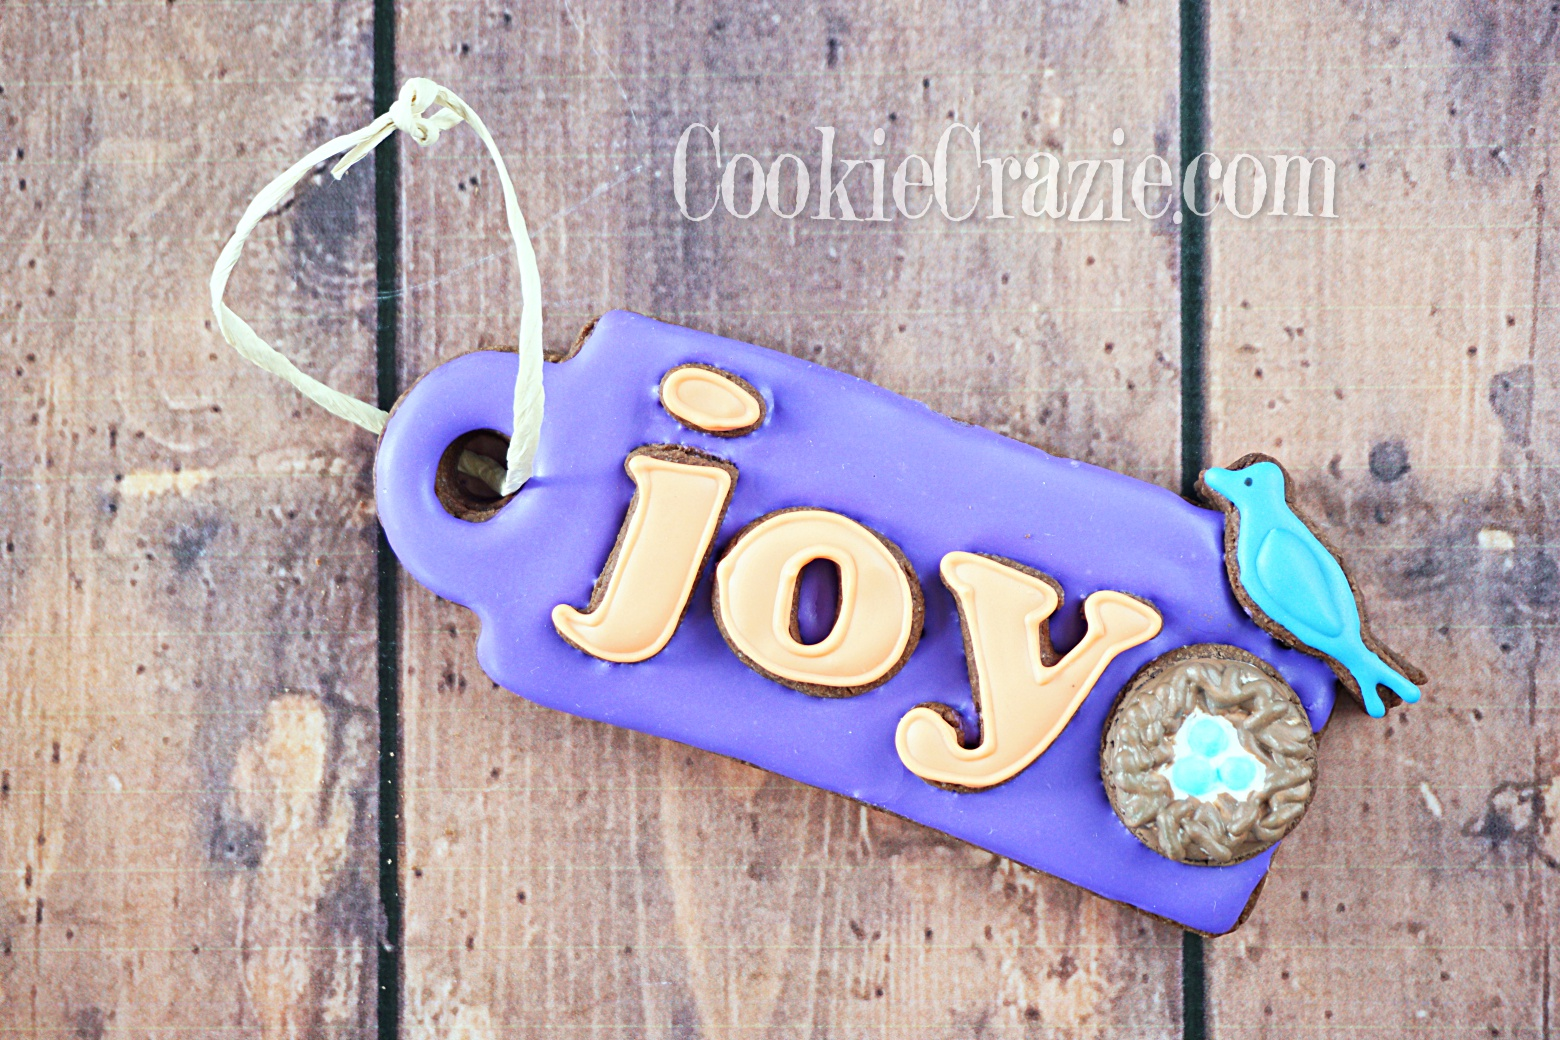 Bird Nest Gift Tag Decorated Sugar Cookie YouTube video  HERE